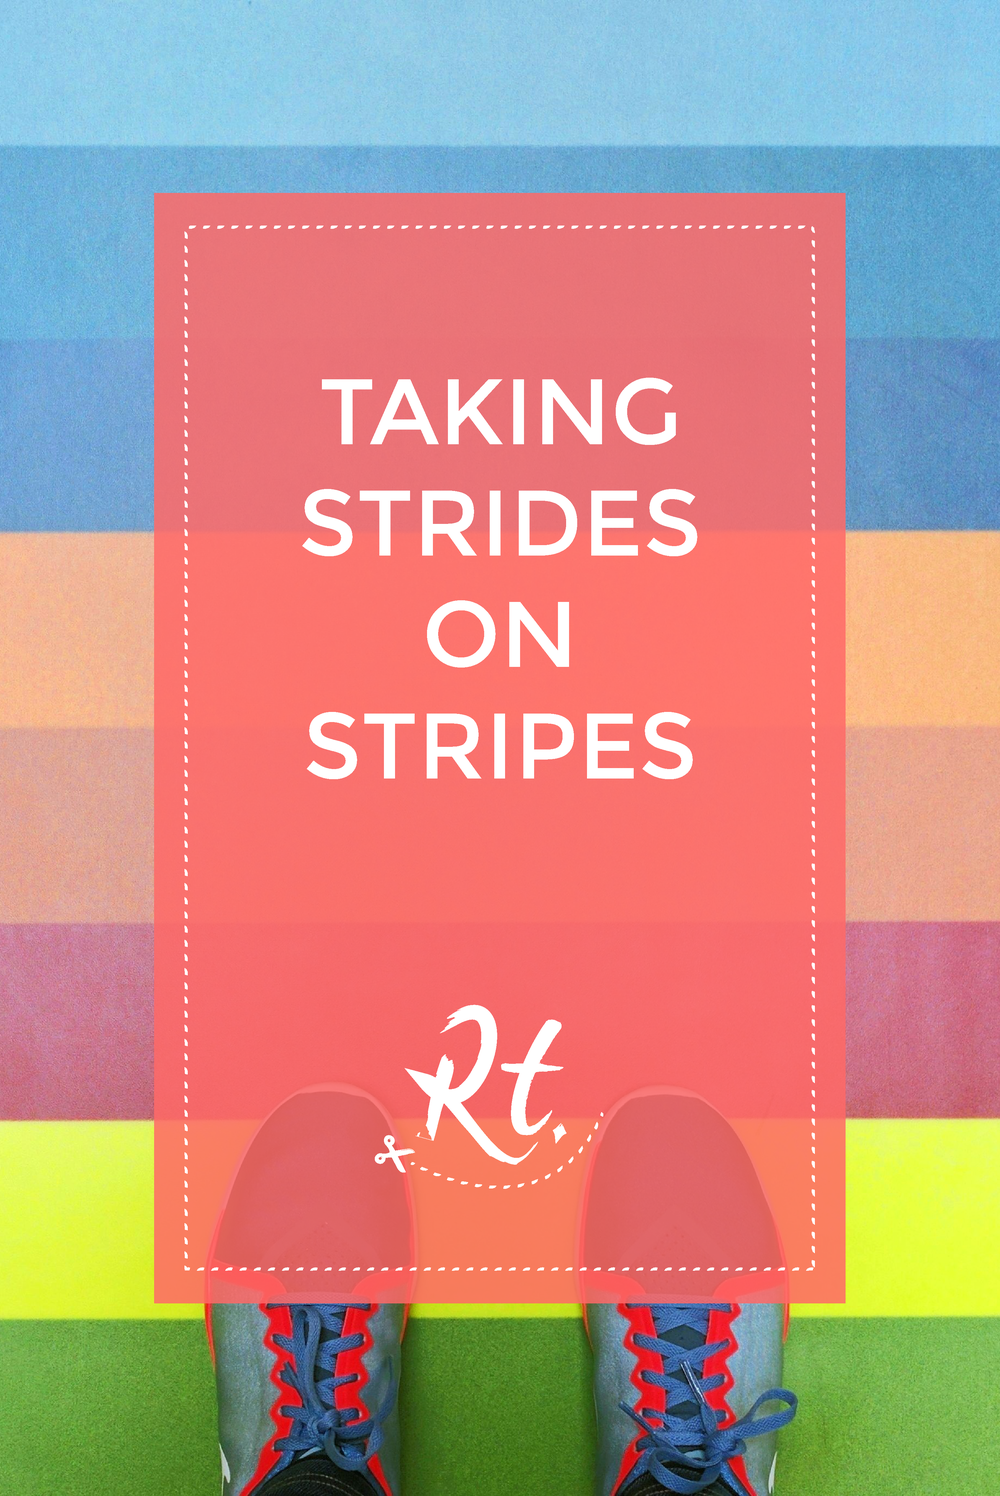 Taking Strides on Stripes by Rosh Thanki, from where I stand photo at the National Army Museum